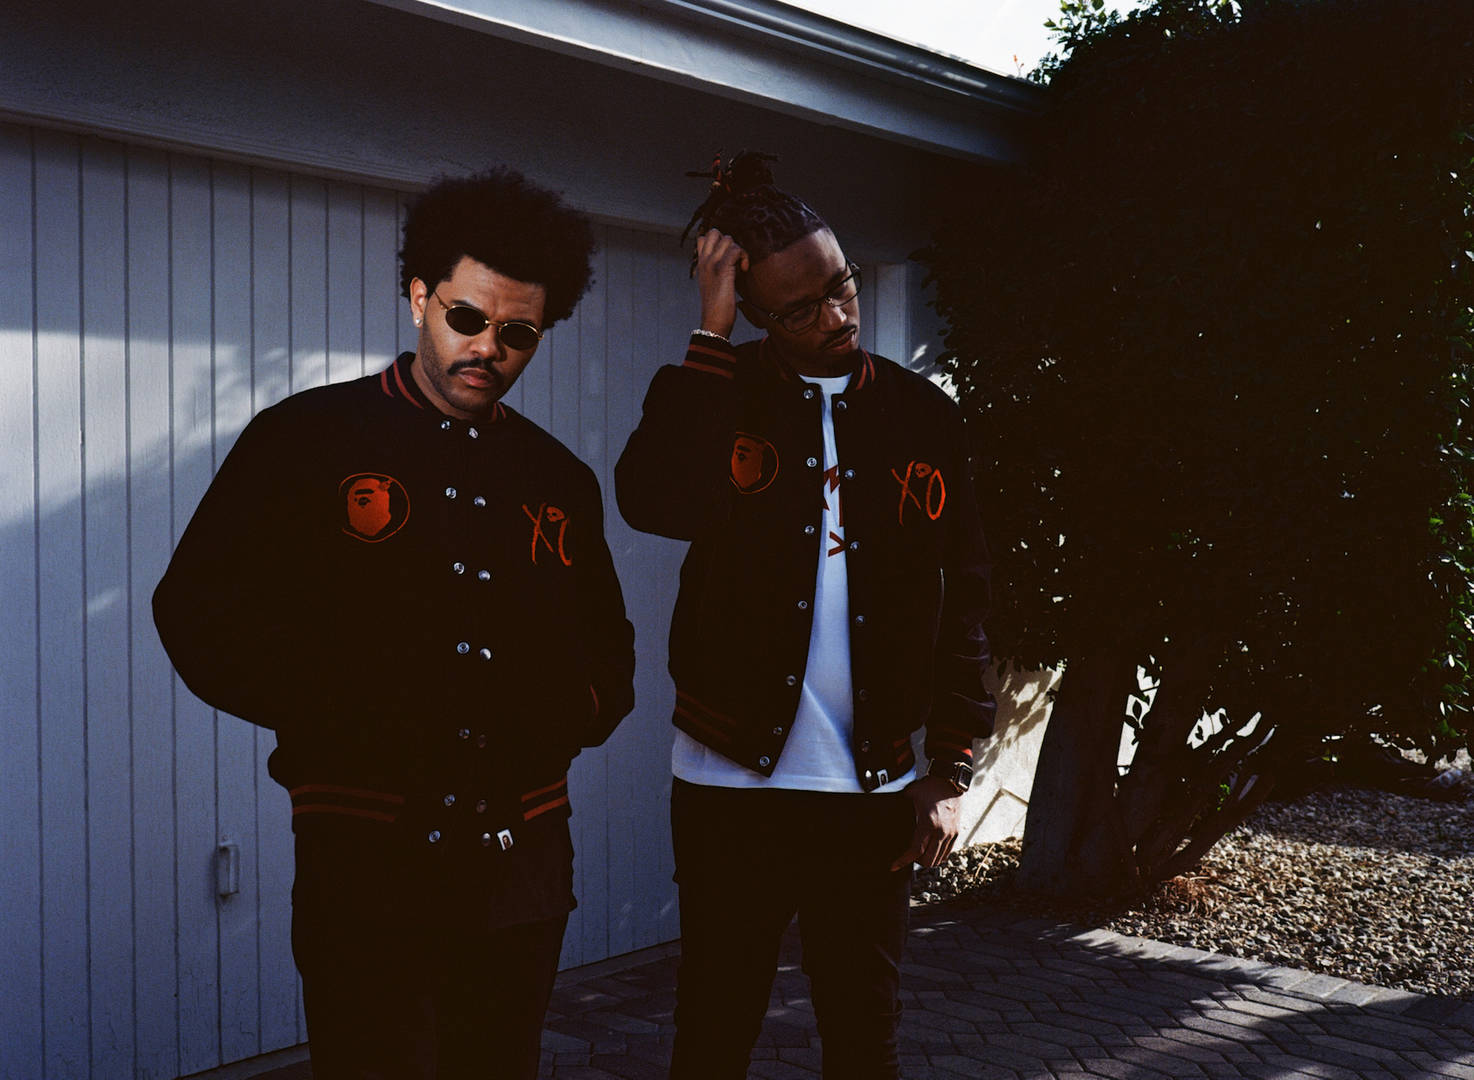 The Weeknd Completes His Mustache Look With A New BAPE x XO Collab